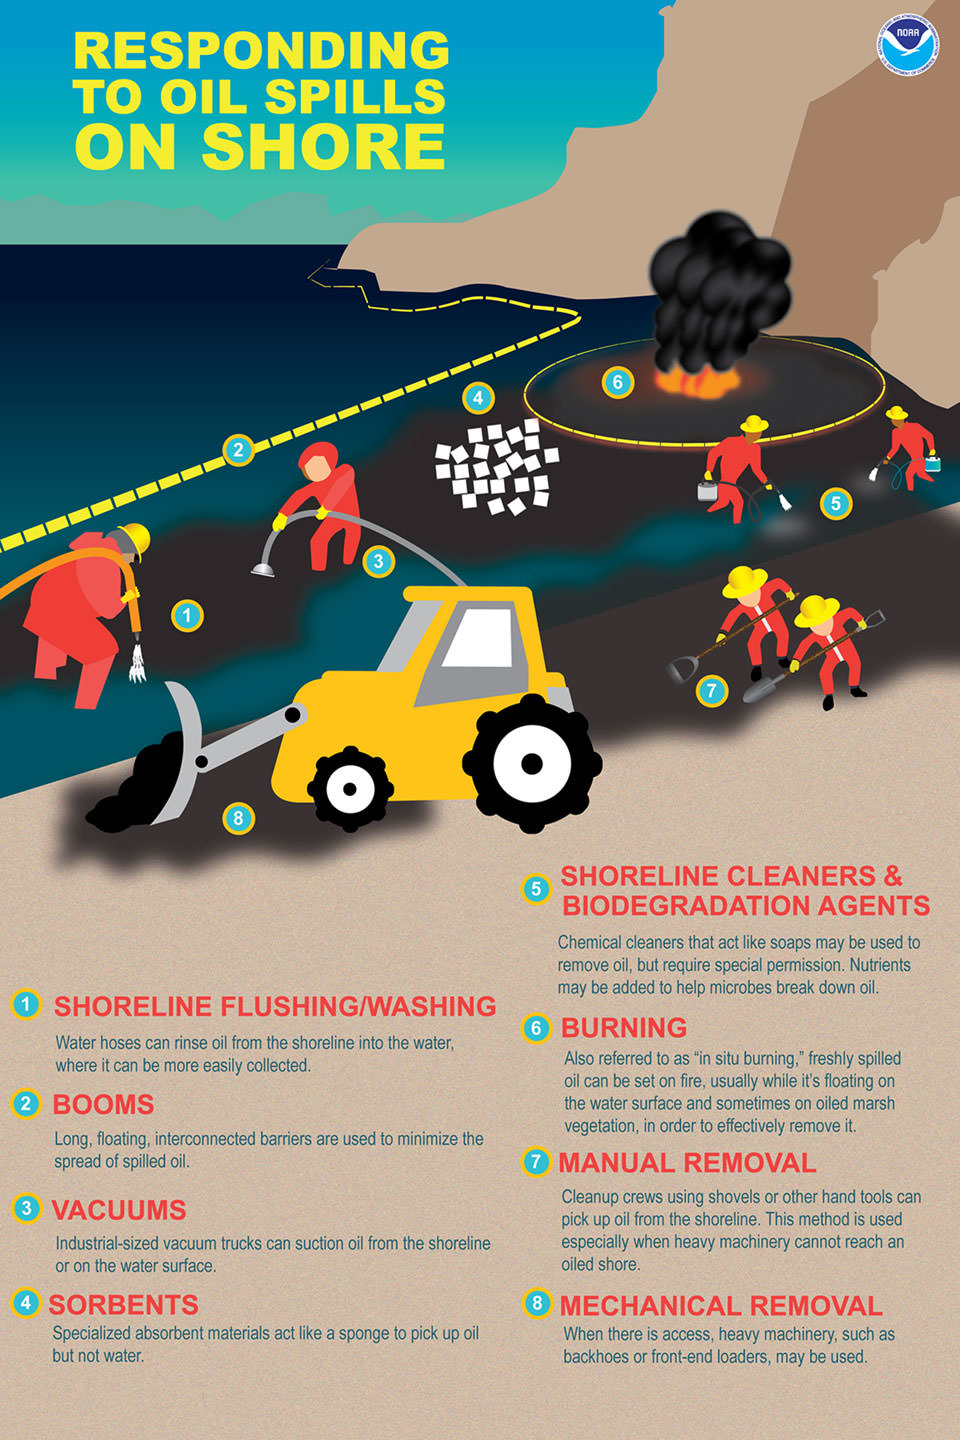 responding to spills on shore infographic